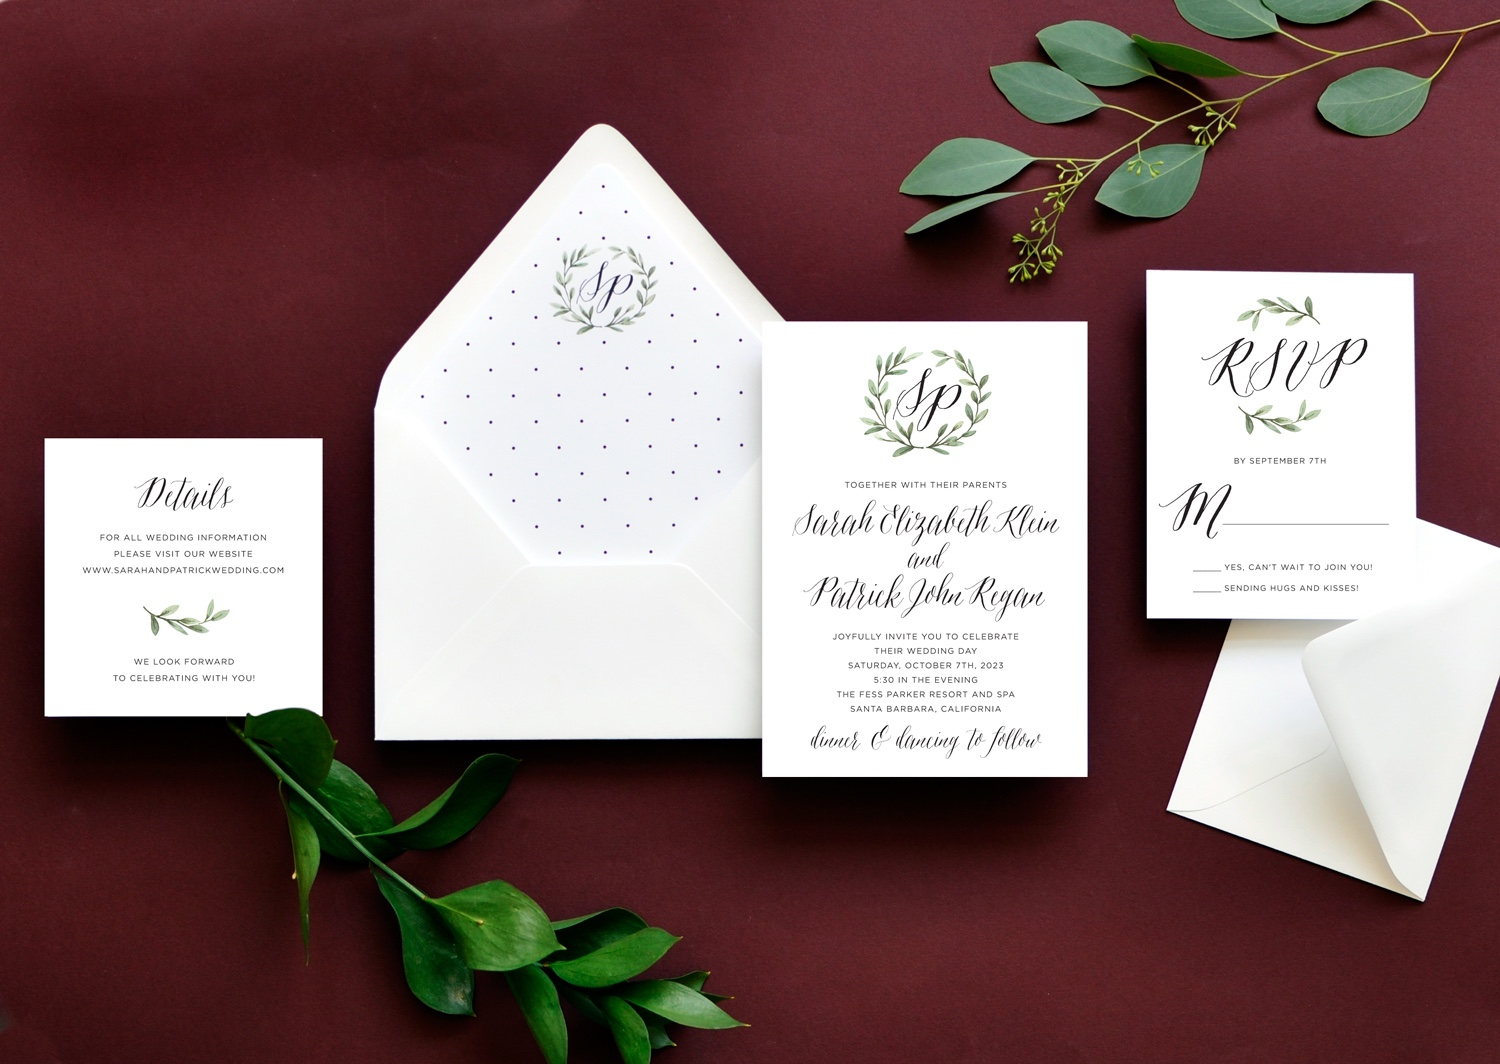 A watercolor laurel of greenery gently frames a monogram at the top of this contemporary wedding invitation featuring a beautiful calligraphy. Small polka dots are a great embellishment to the envelope liner.